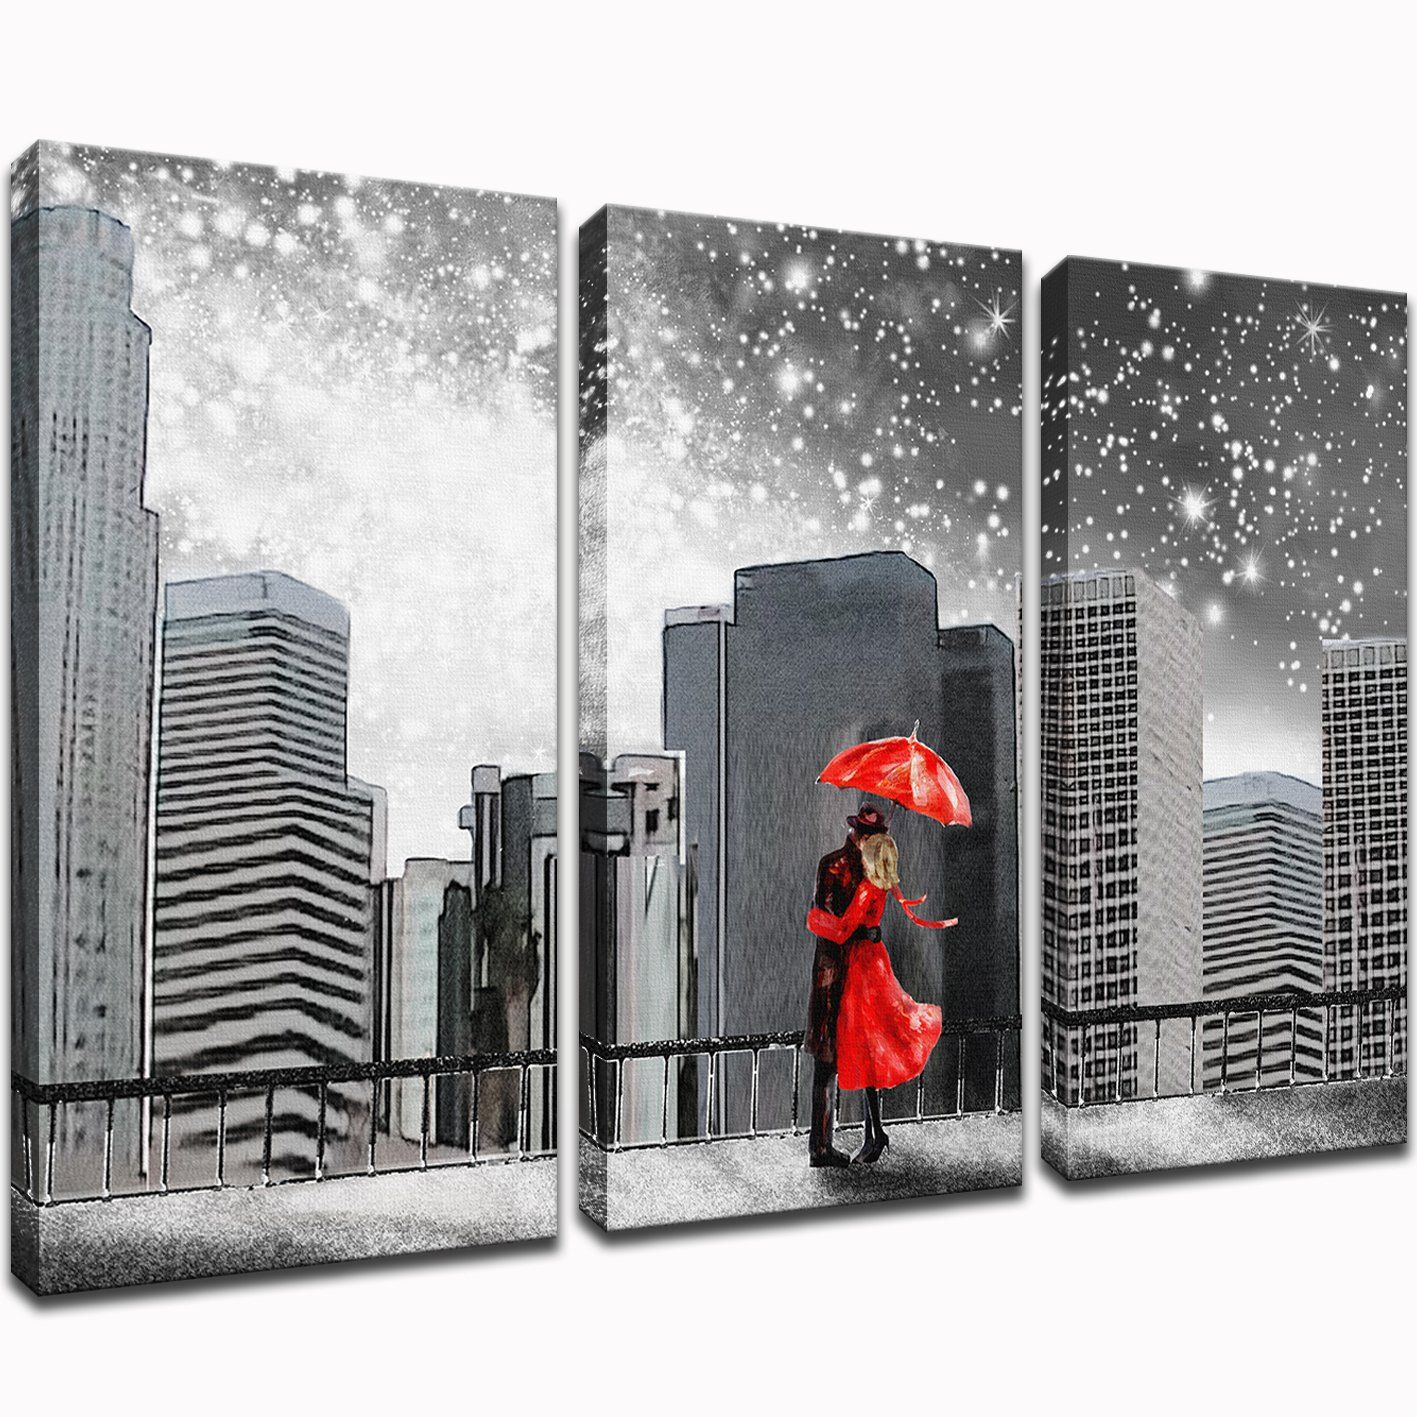 Klvos Abstract 3 Piece Wall Art Black And White Couples With Red Umbrella Under New York Starry Night Ci Red Wall Art Red Wall Art Living Room Canvas Wall Art